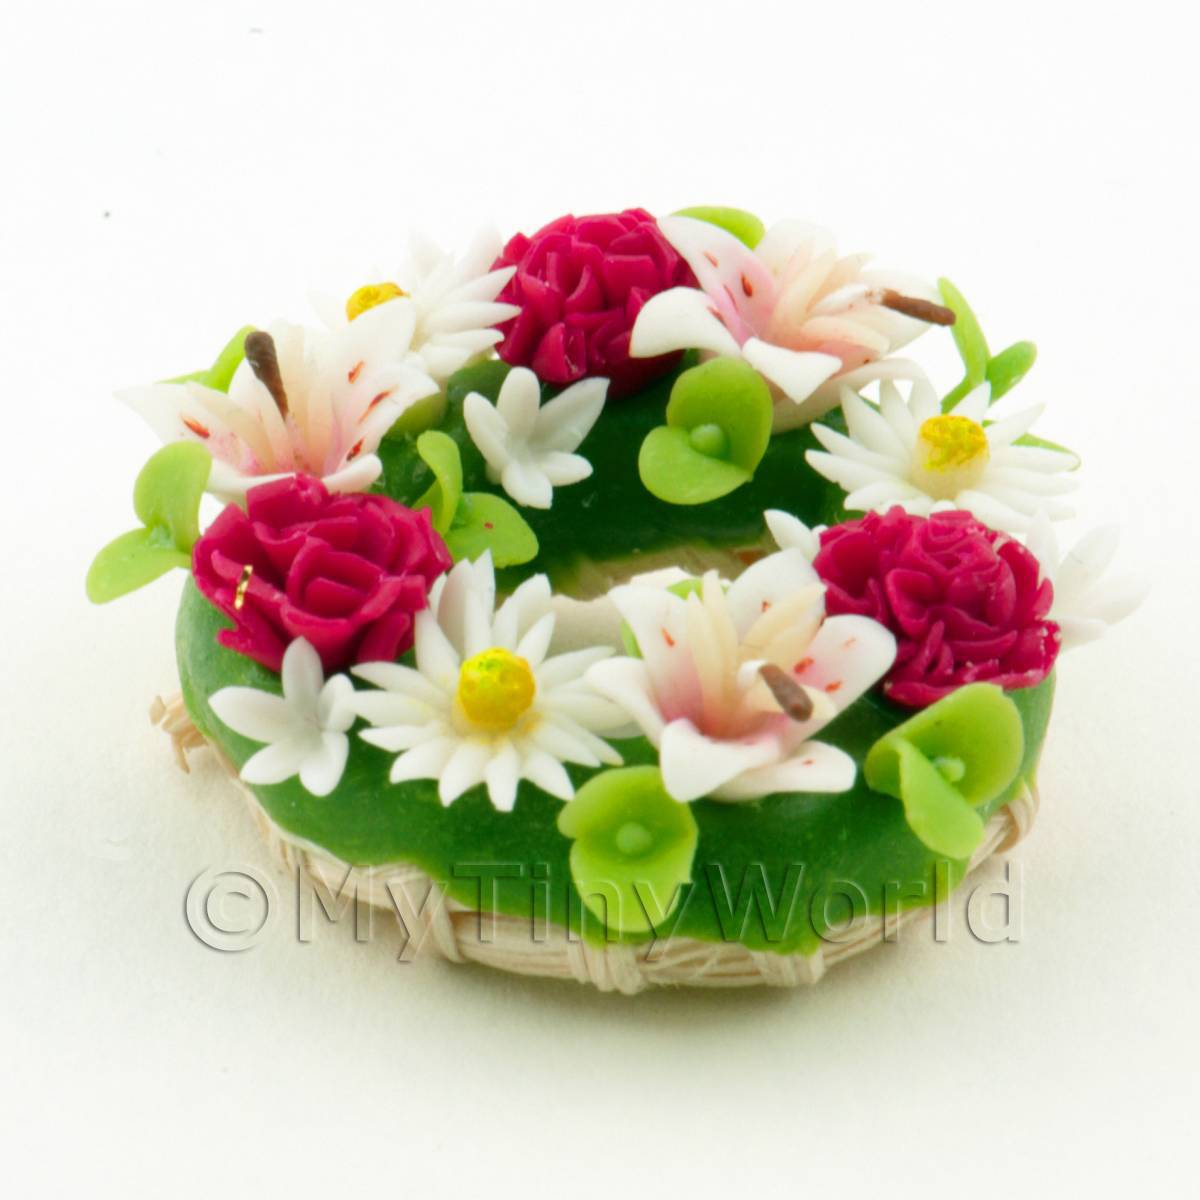 Dolls House Miniature Red Pink and White Mixed Flower Wreath